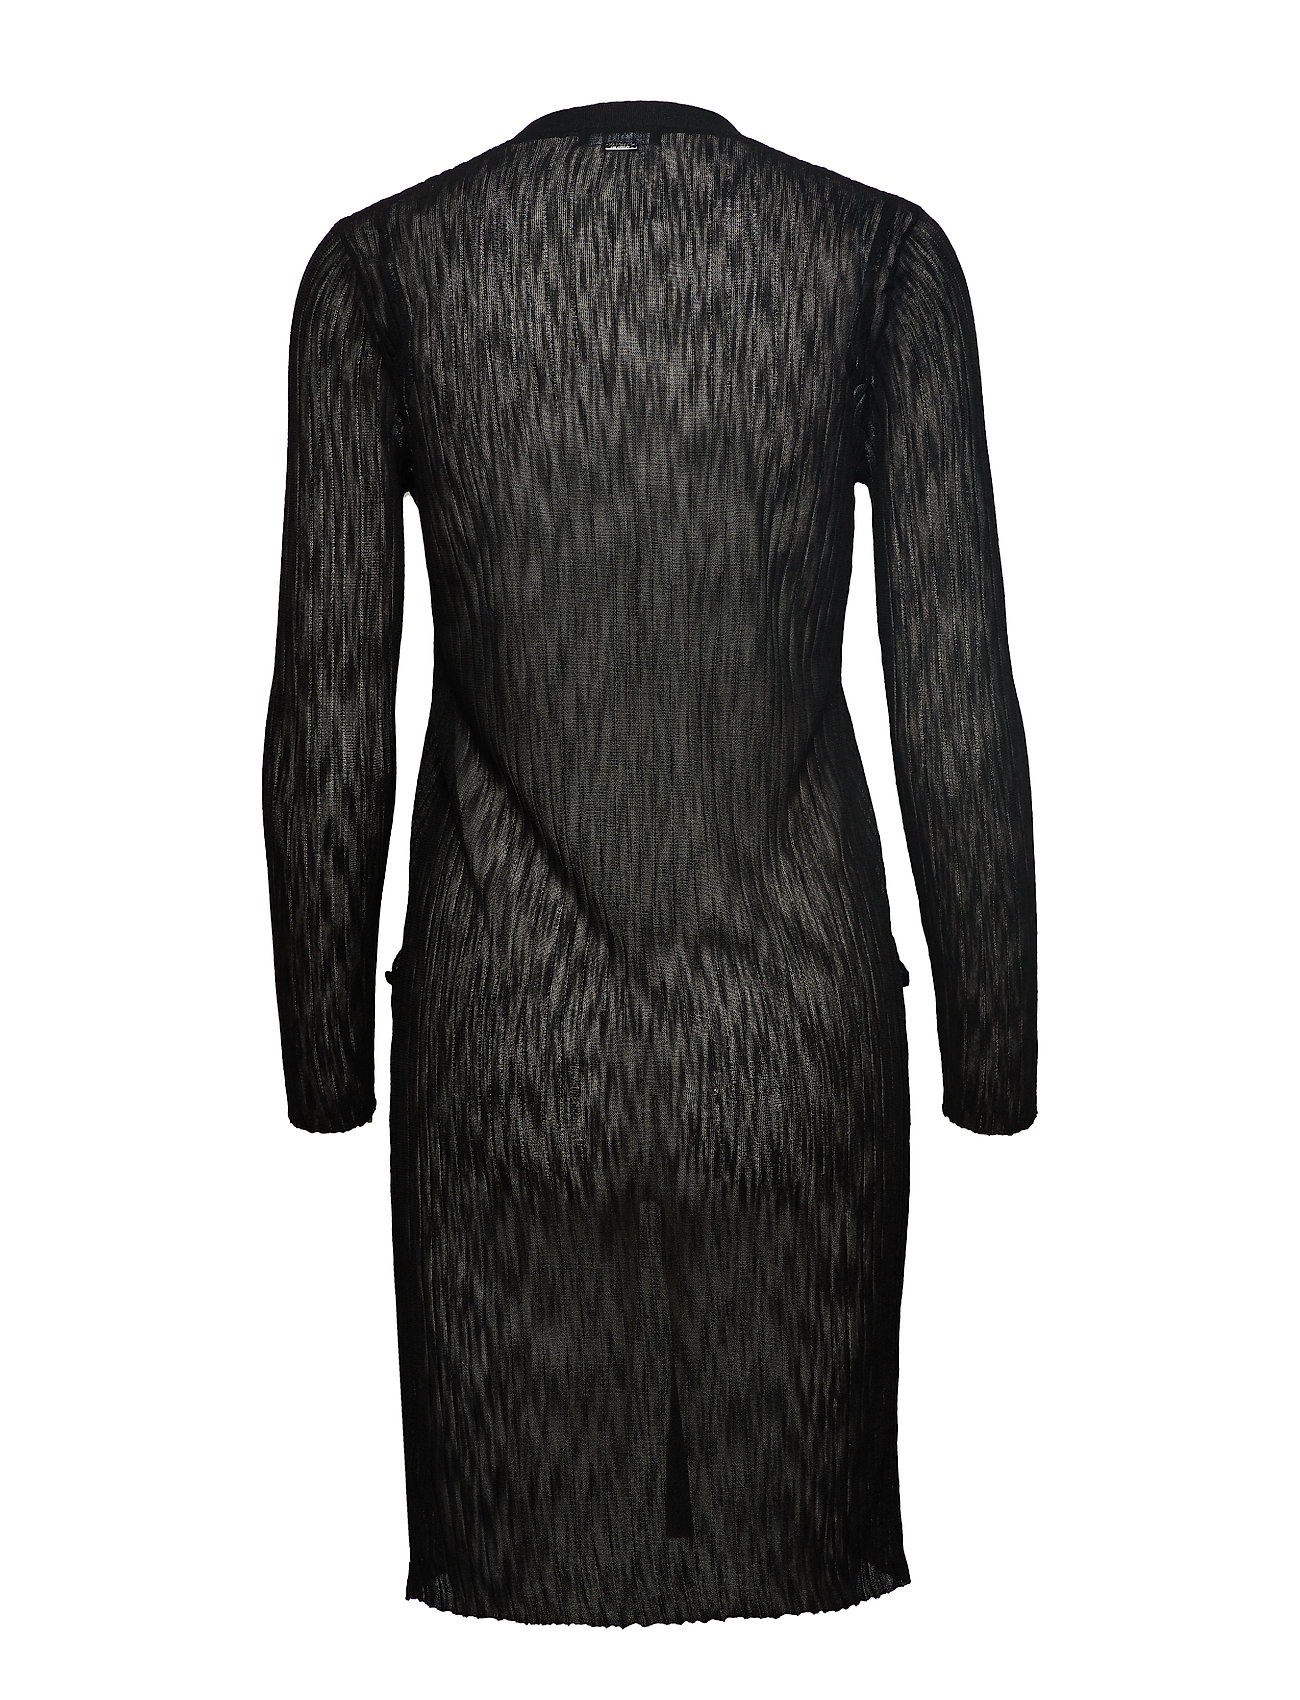 A996Marciano By Julianna Cover Black Upjet Guess Sweater E9HDIW2Y